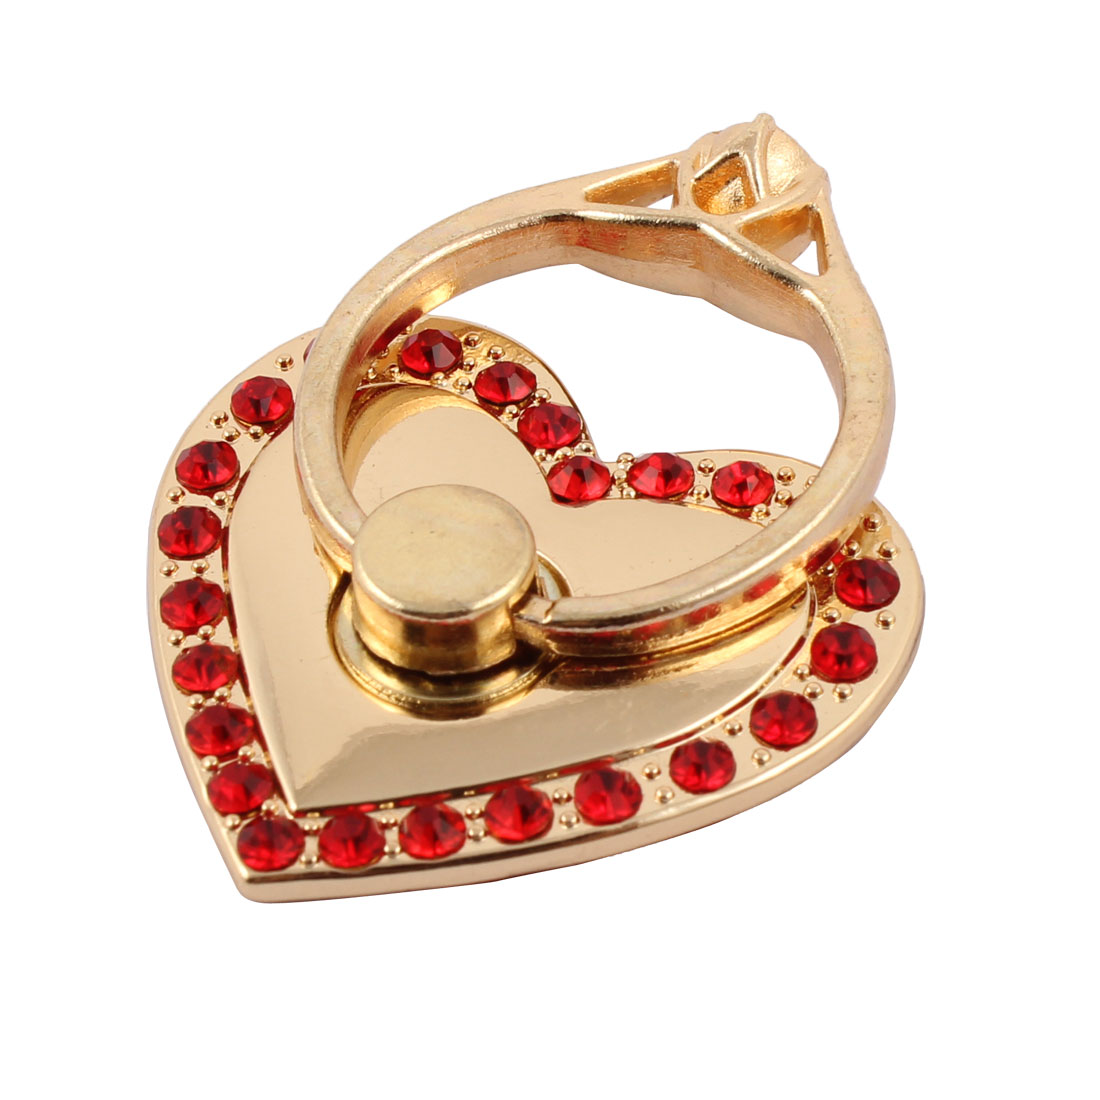 Mobile Phone Metal Rhinestone Inlaid Finger Grip Ring Buckle Heart Shaped Holder Bracket Red